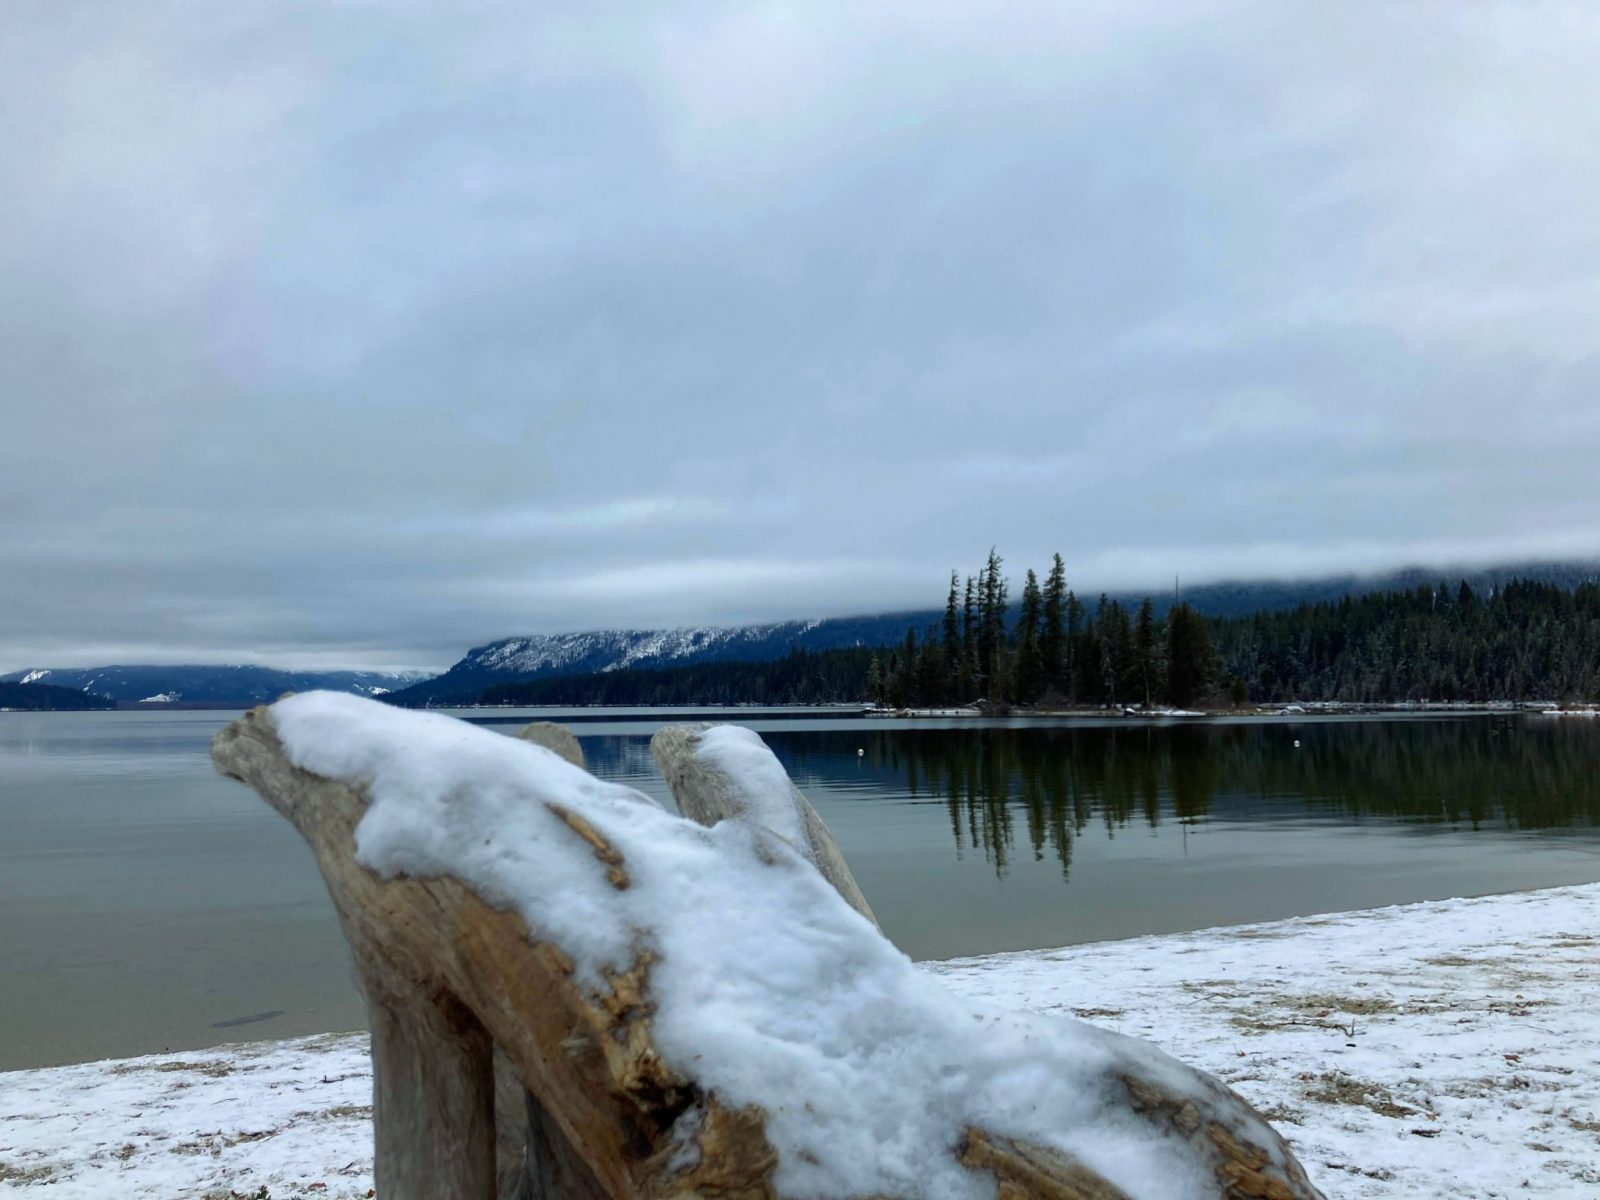 Lake Wenatchee on an overcast winter day. The lake is not frozen but it is surrounded by snow. There are also snowy trees aroudn teh lake and a piece of snow covered driftwood in the foreground